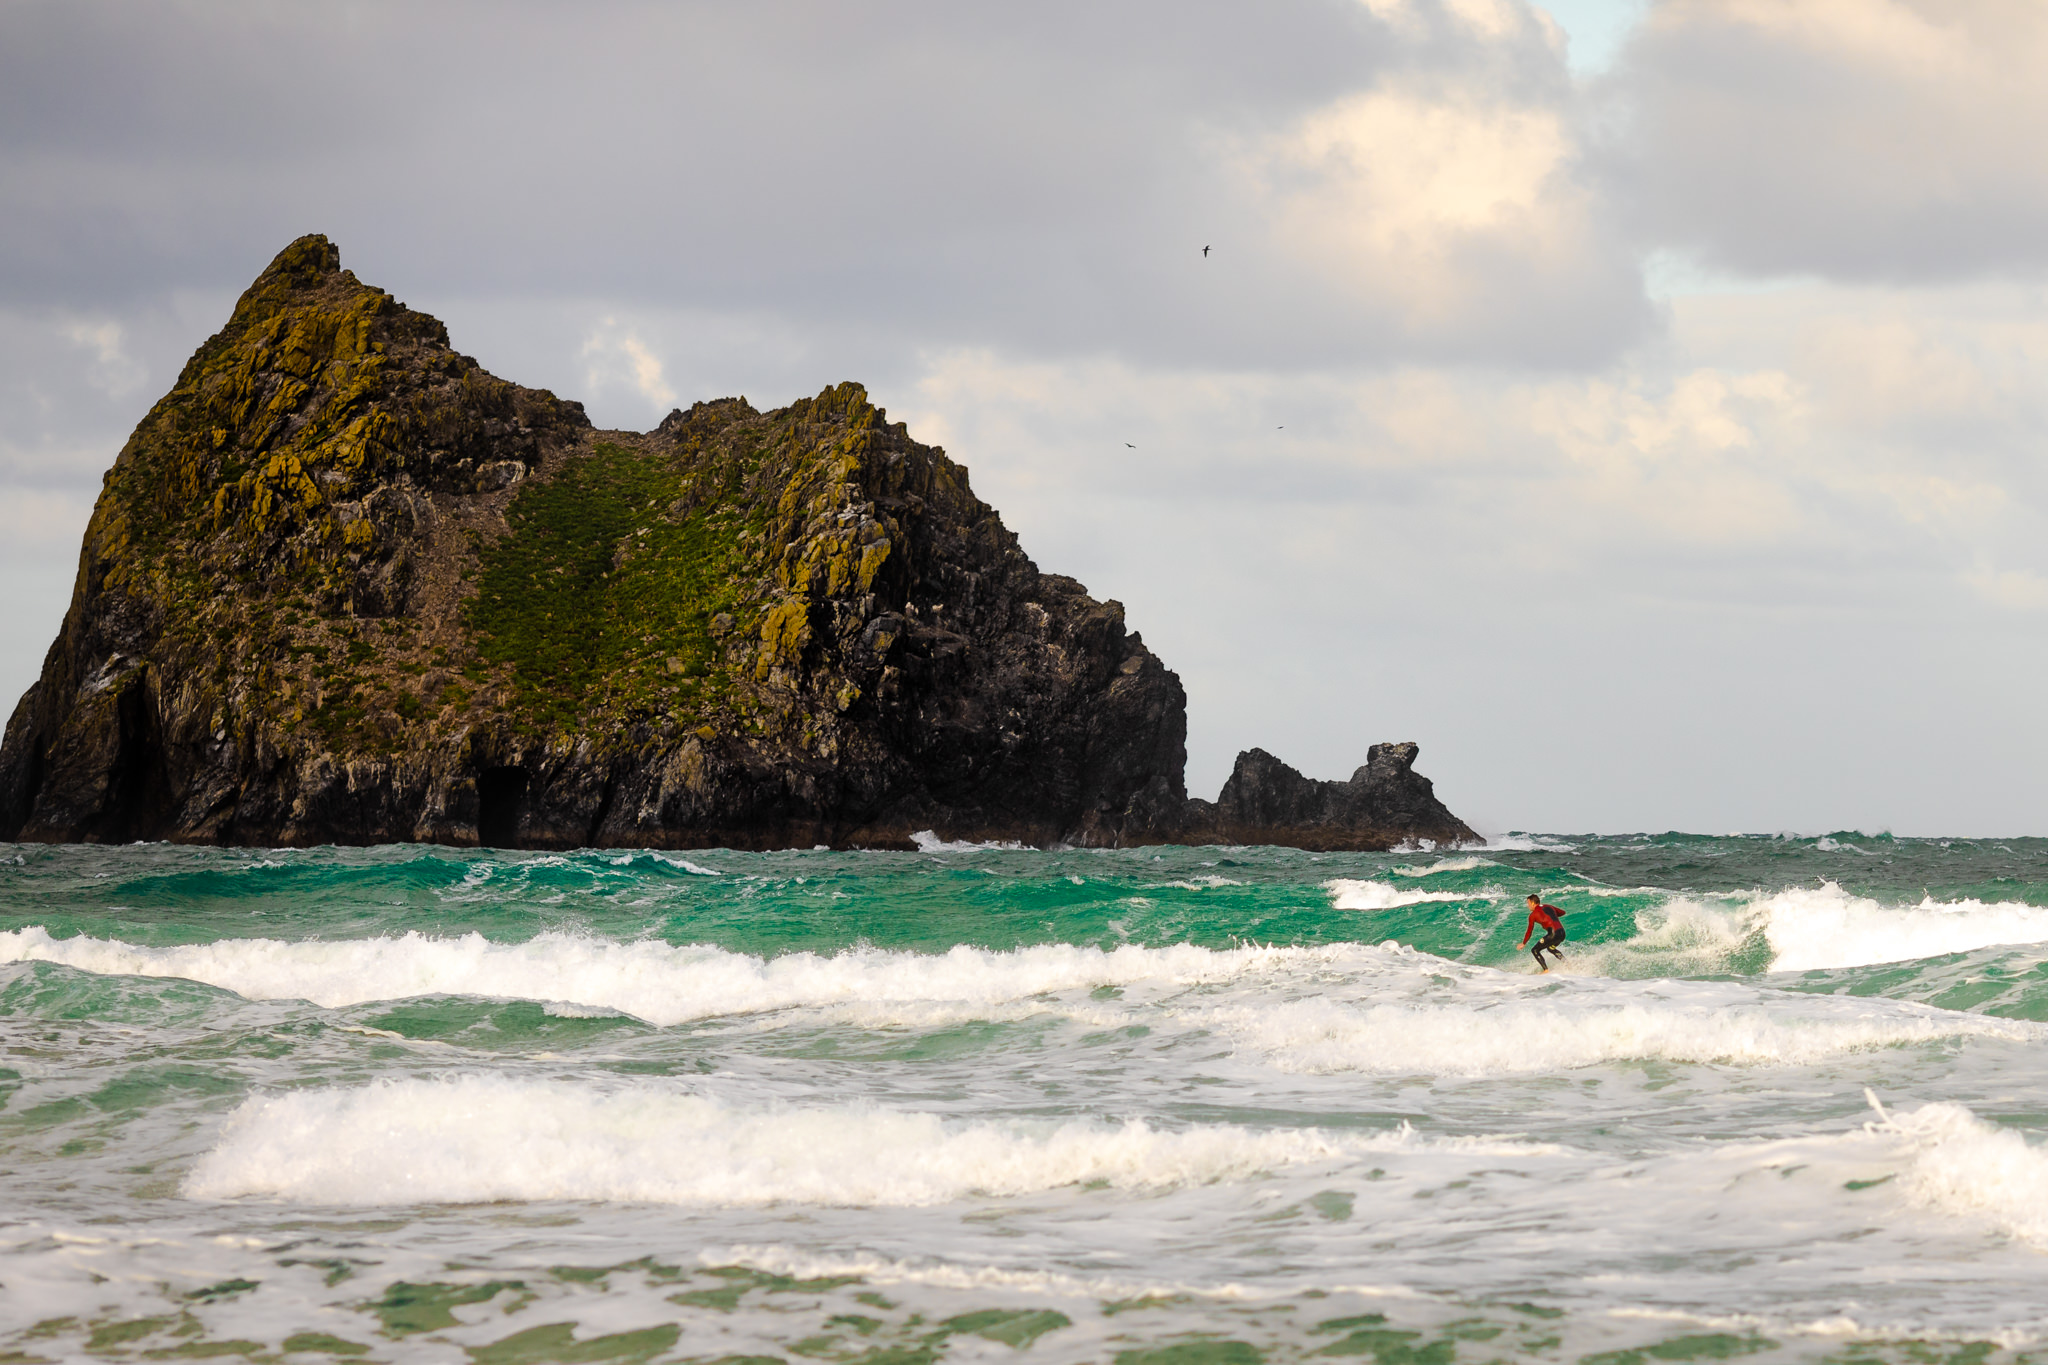 Holywell Bay in Cornwall surfing waves